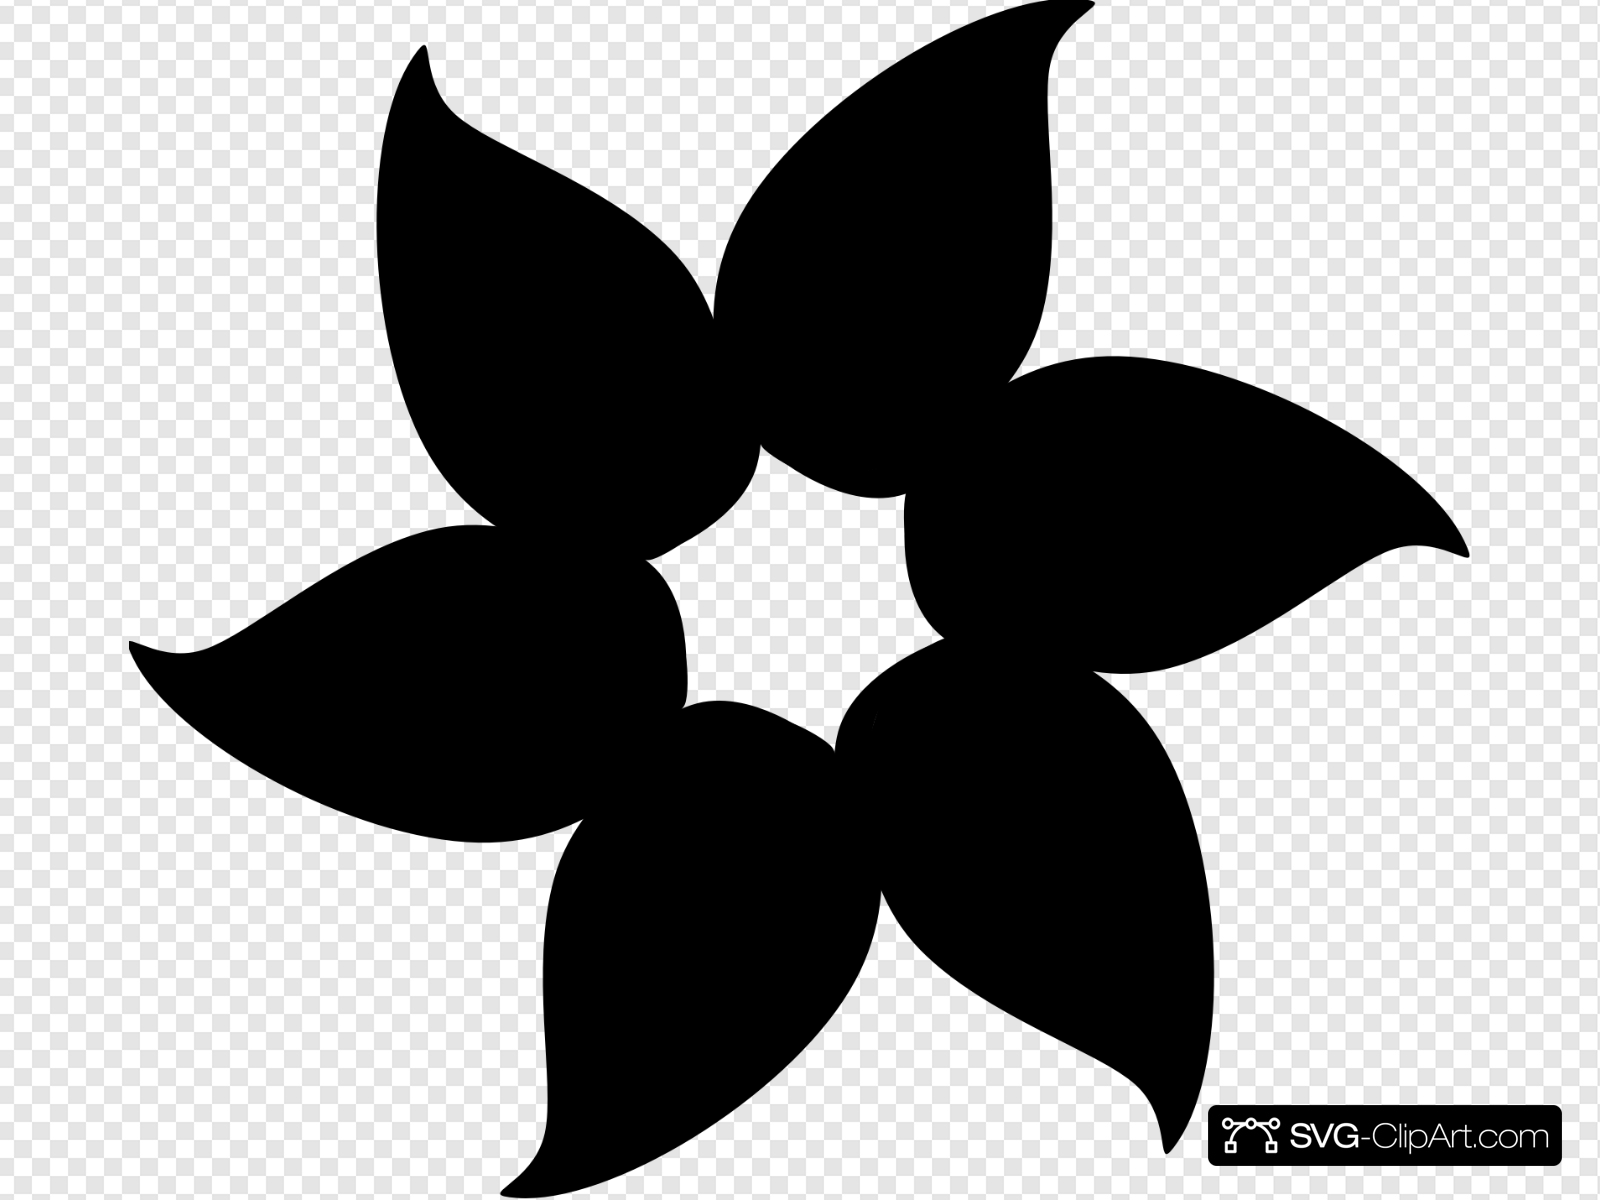 Solid Black Flower Clip art, Icon and SVG.